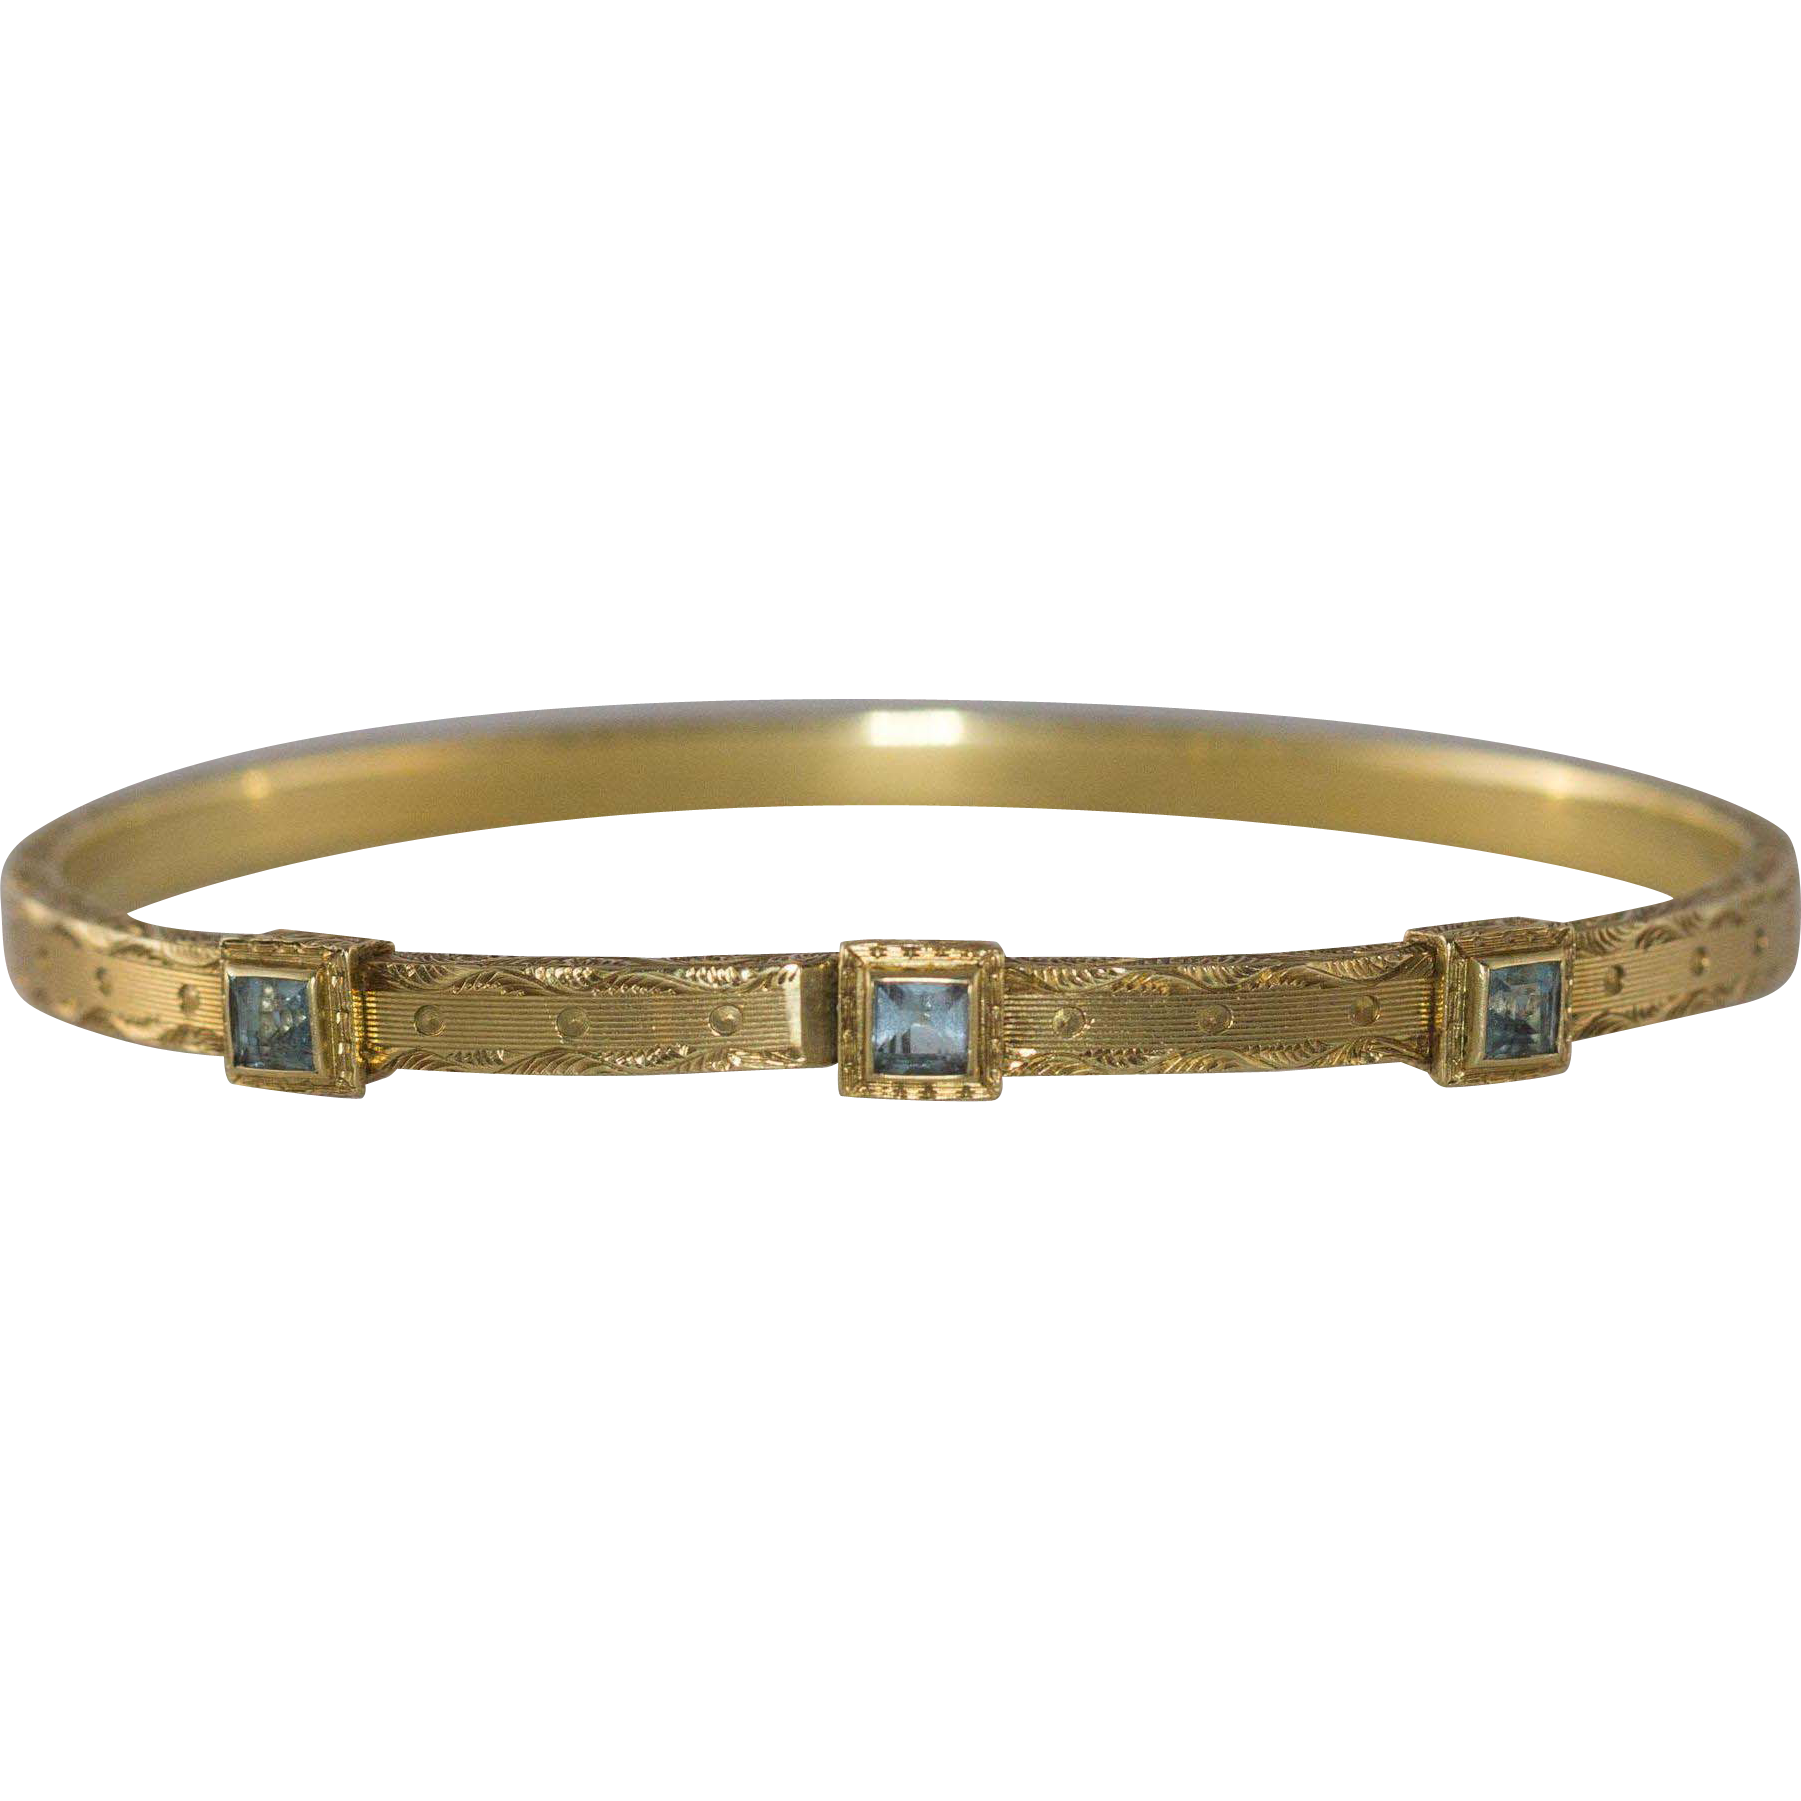 14k Yellow Gold Aquamarine Bangle Bracelet From. Silver Charm Anklet. White Gold Diamond. Sterling Silver Earrings. Thin Band Engagement Rings. Multi Color Stud Earrings. Tiger Necklace. 14k Gold Stud Earrings. Micro Chains